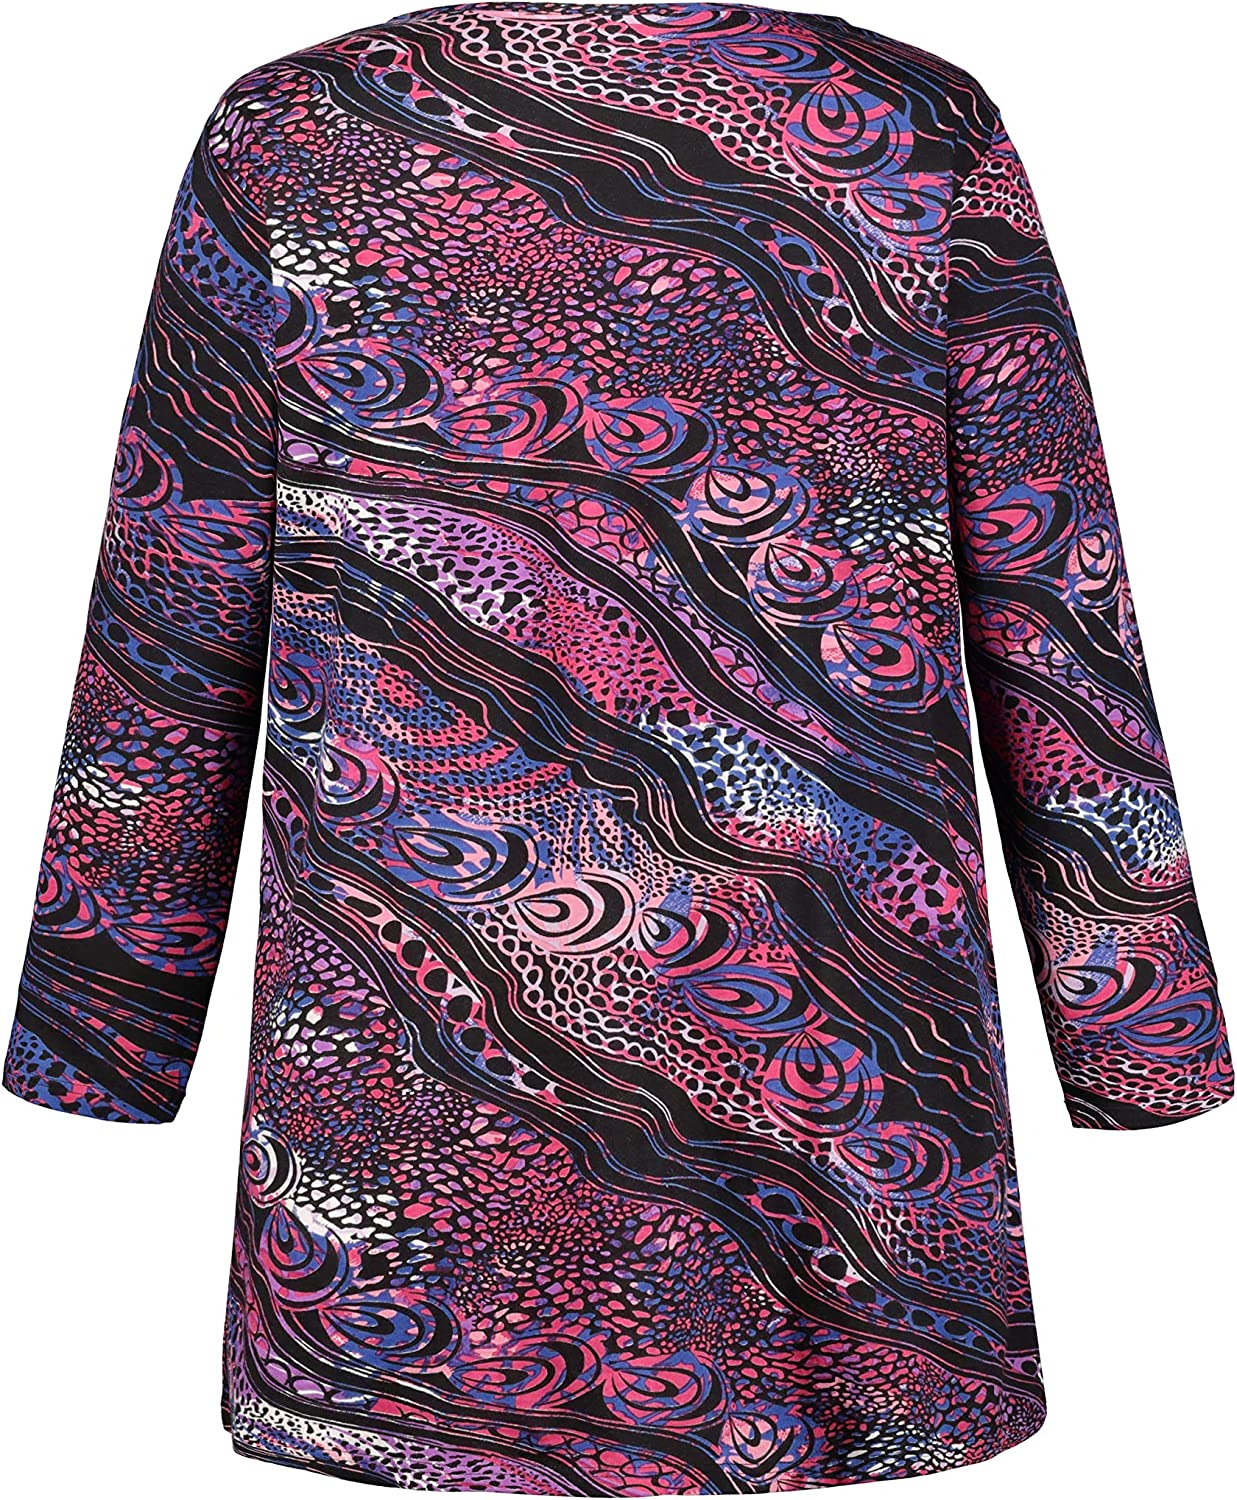 Ulla Popken Women's Plus Size Swirling Print Pocket Knit Tunic 718208 Multicoloured (Multi 71820890)